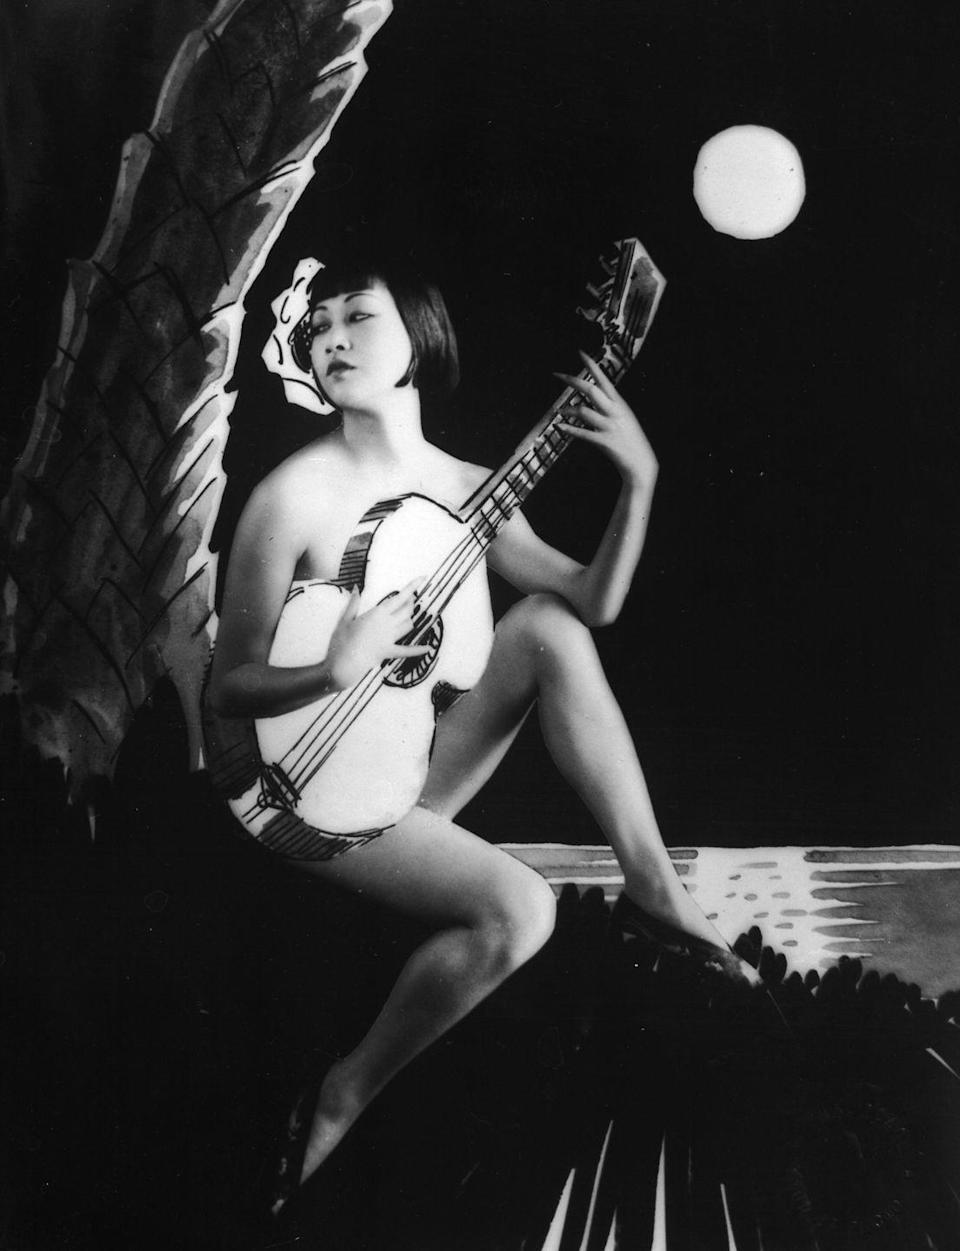 <p>In 1930, Wong returned to Hollywood after being offered a contract with Paramount Studios. This artistic shot was taken that year. </p>